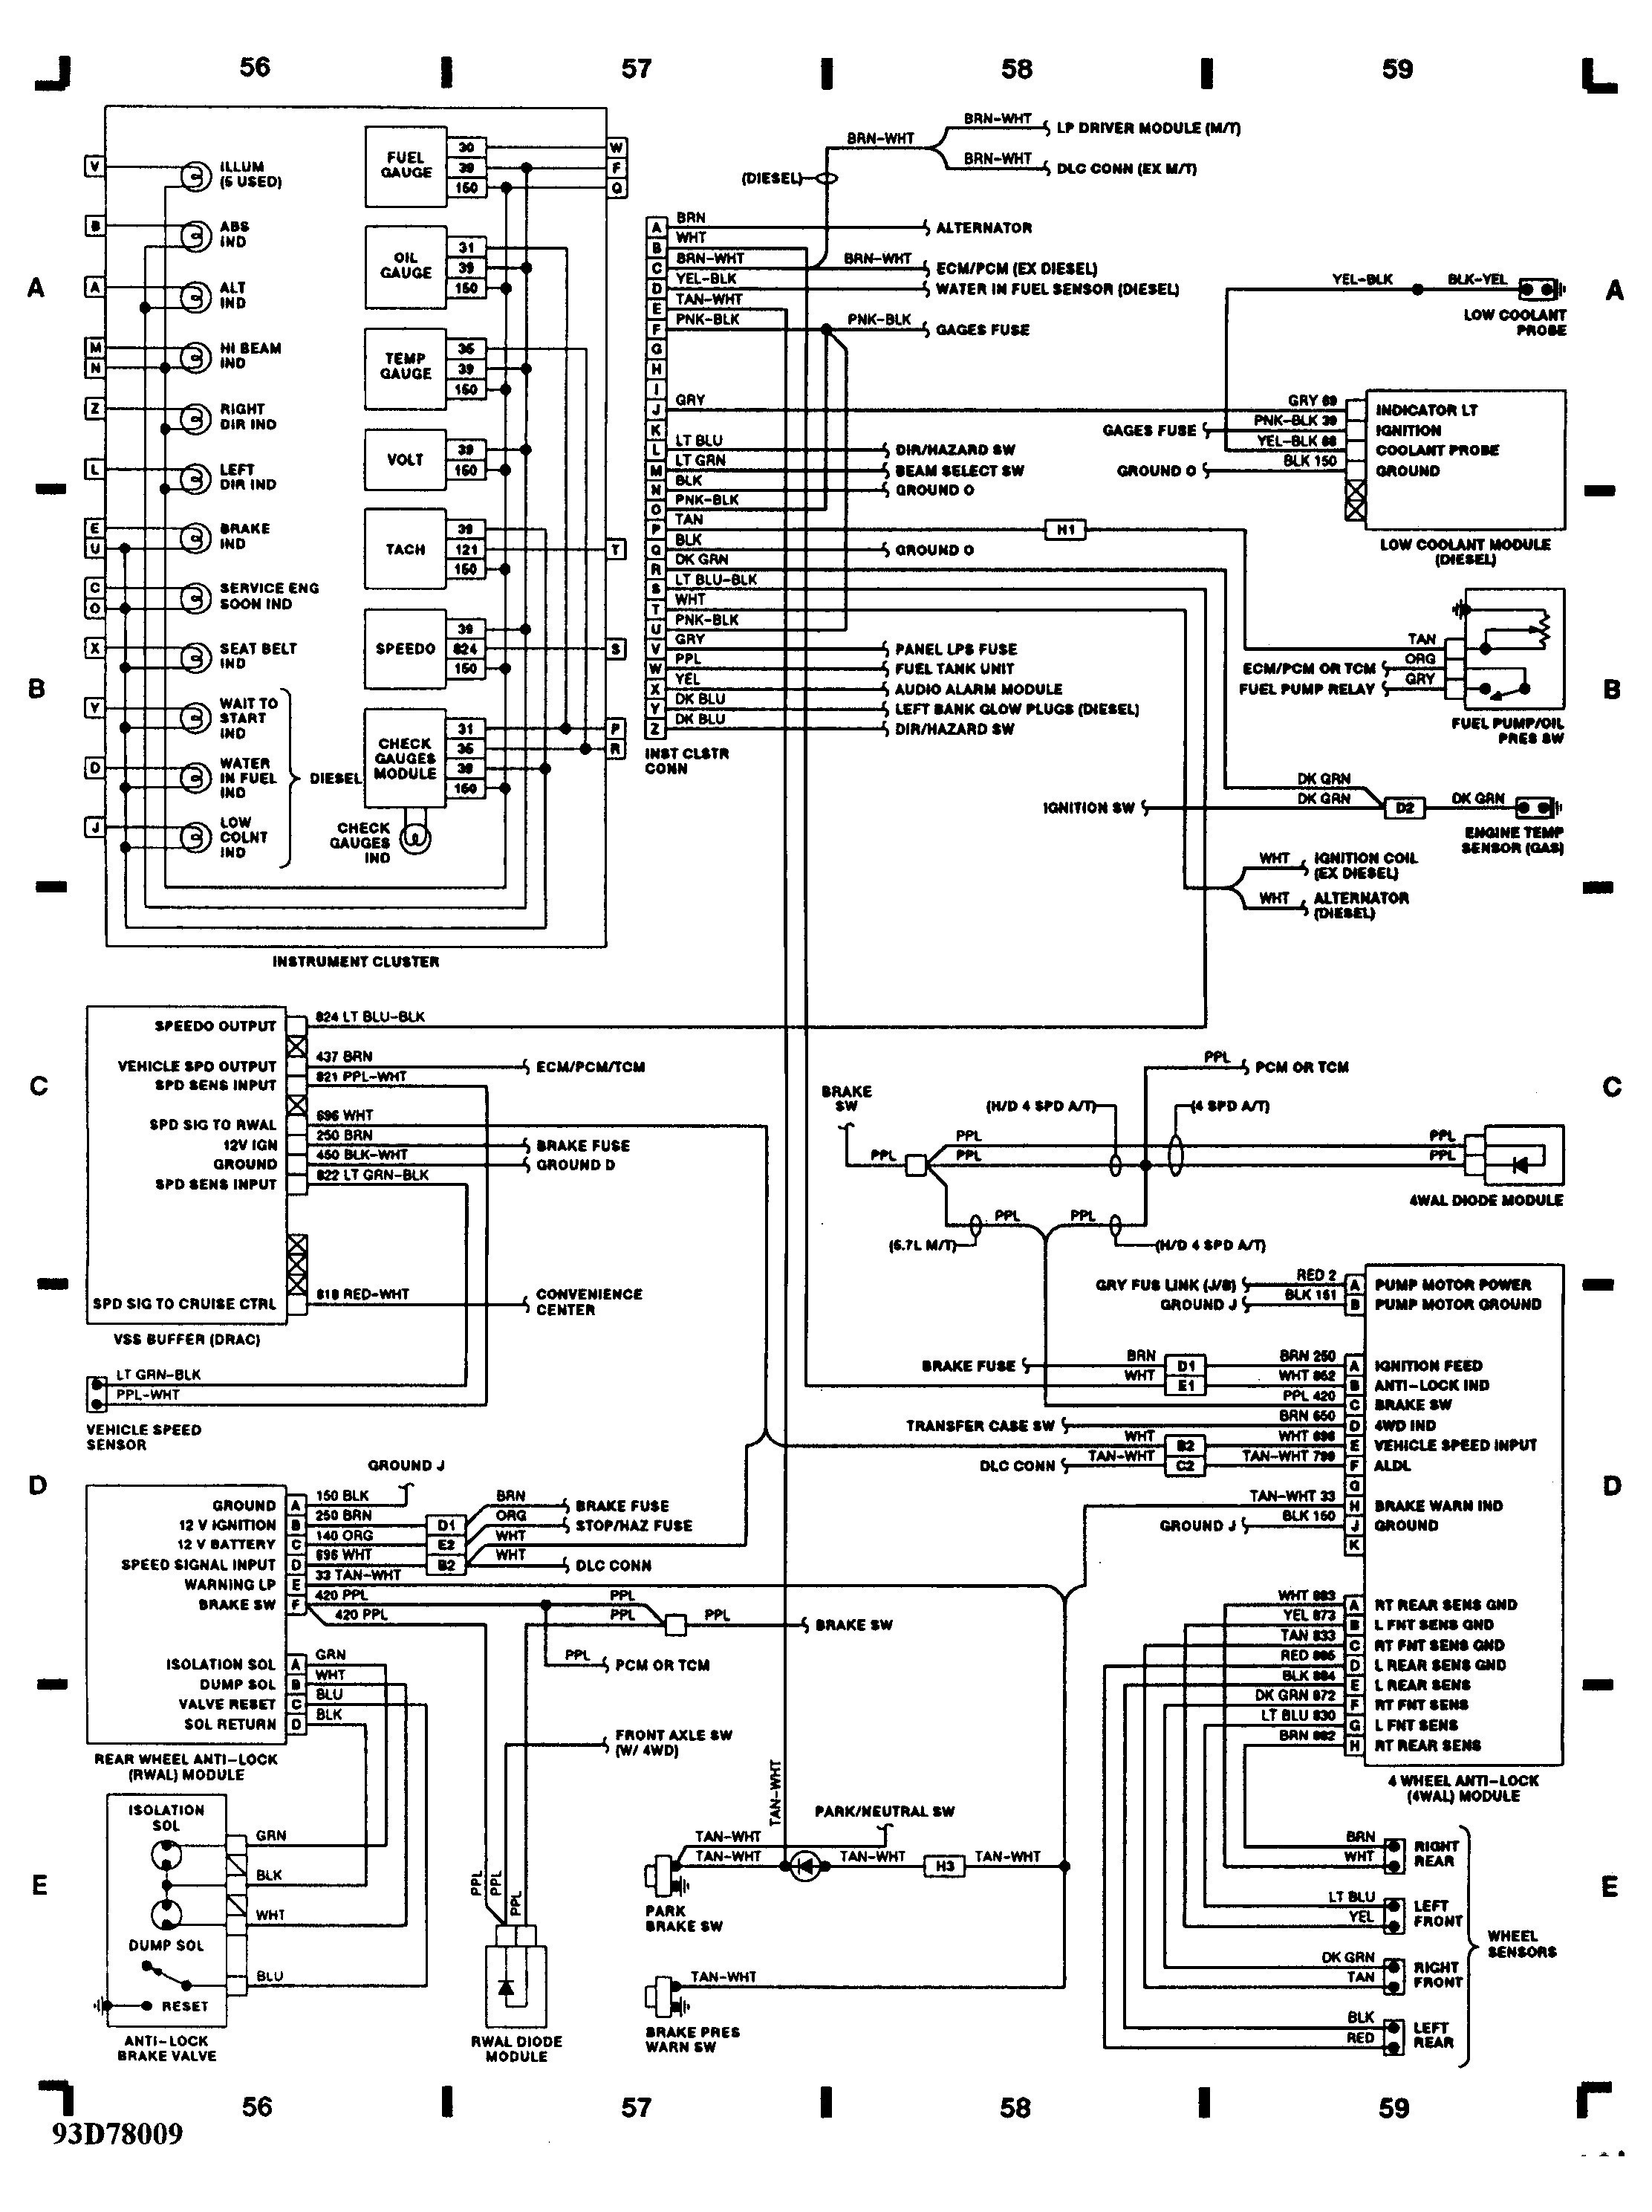 5 3 vortec srs wiring diagram online circuit wiring diagram u2022 rh electrobuddha co uk